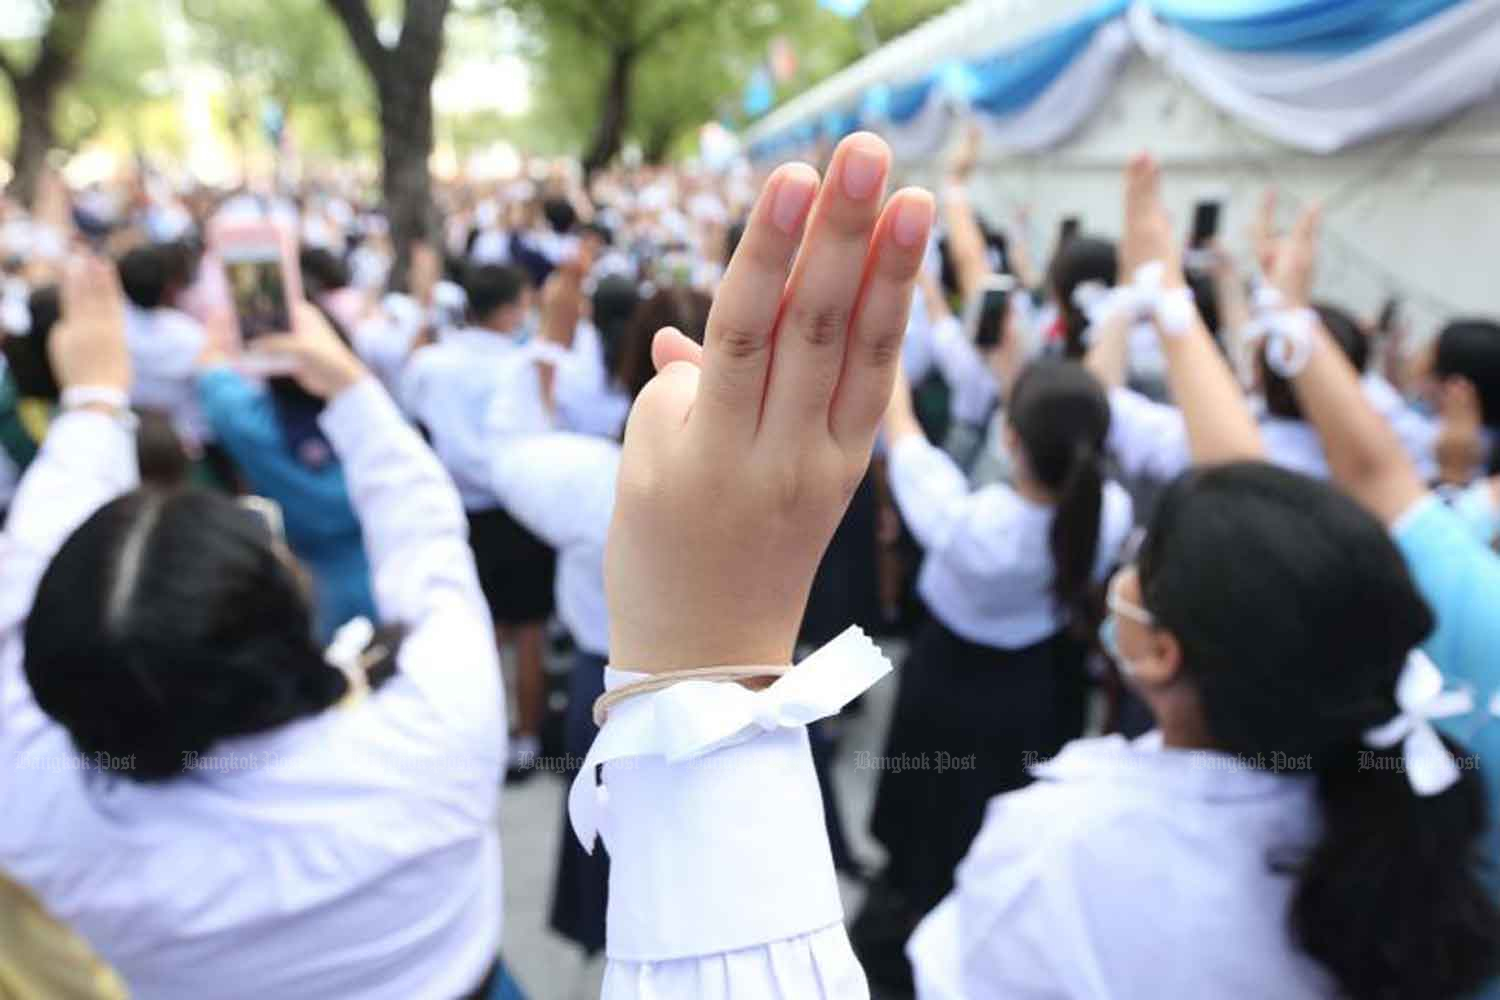 Students give the three-finger salute during a rally at the Education Ministry in Bangkok on Aug 19. (Photo: Pattarapong Chatpattarasill)